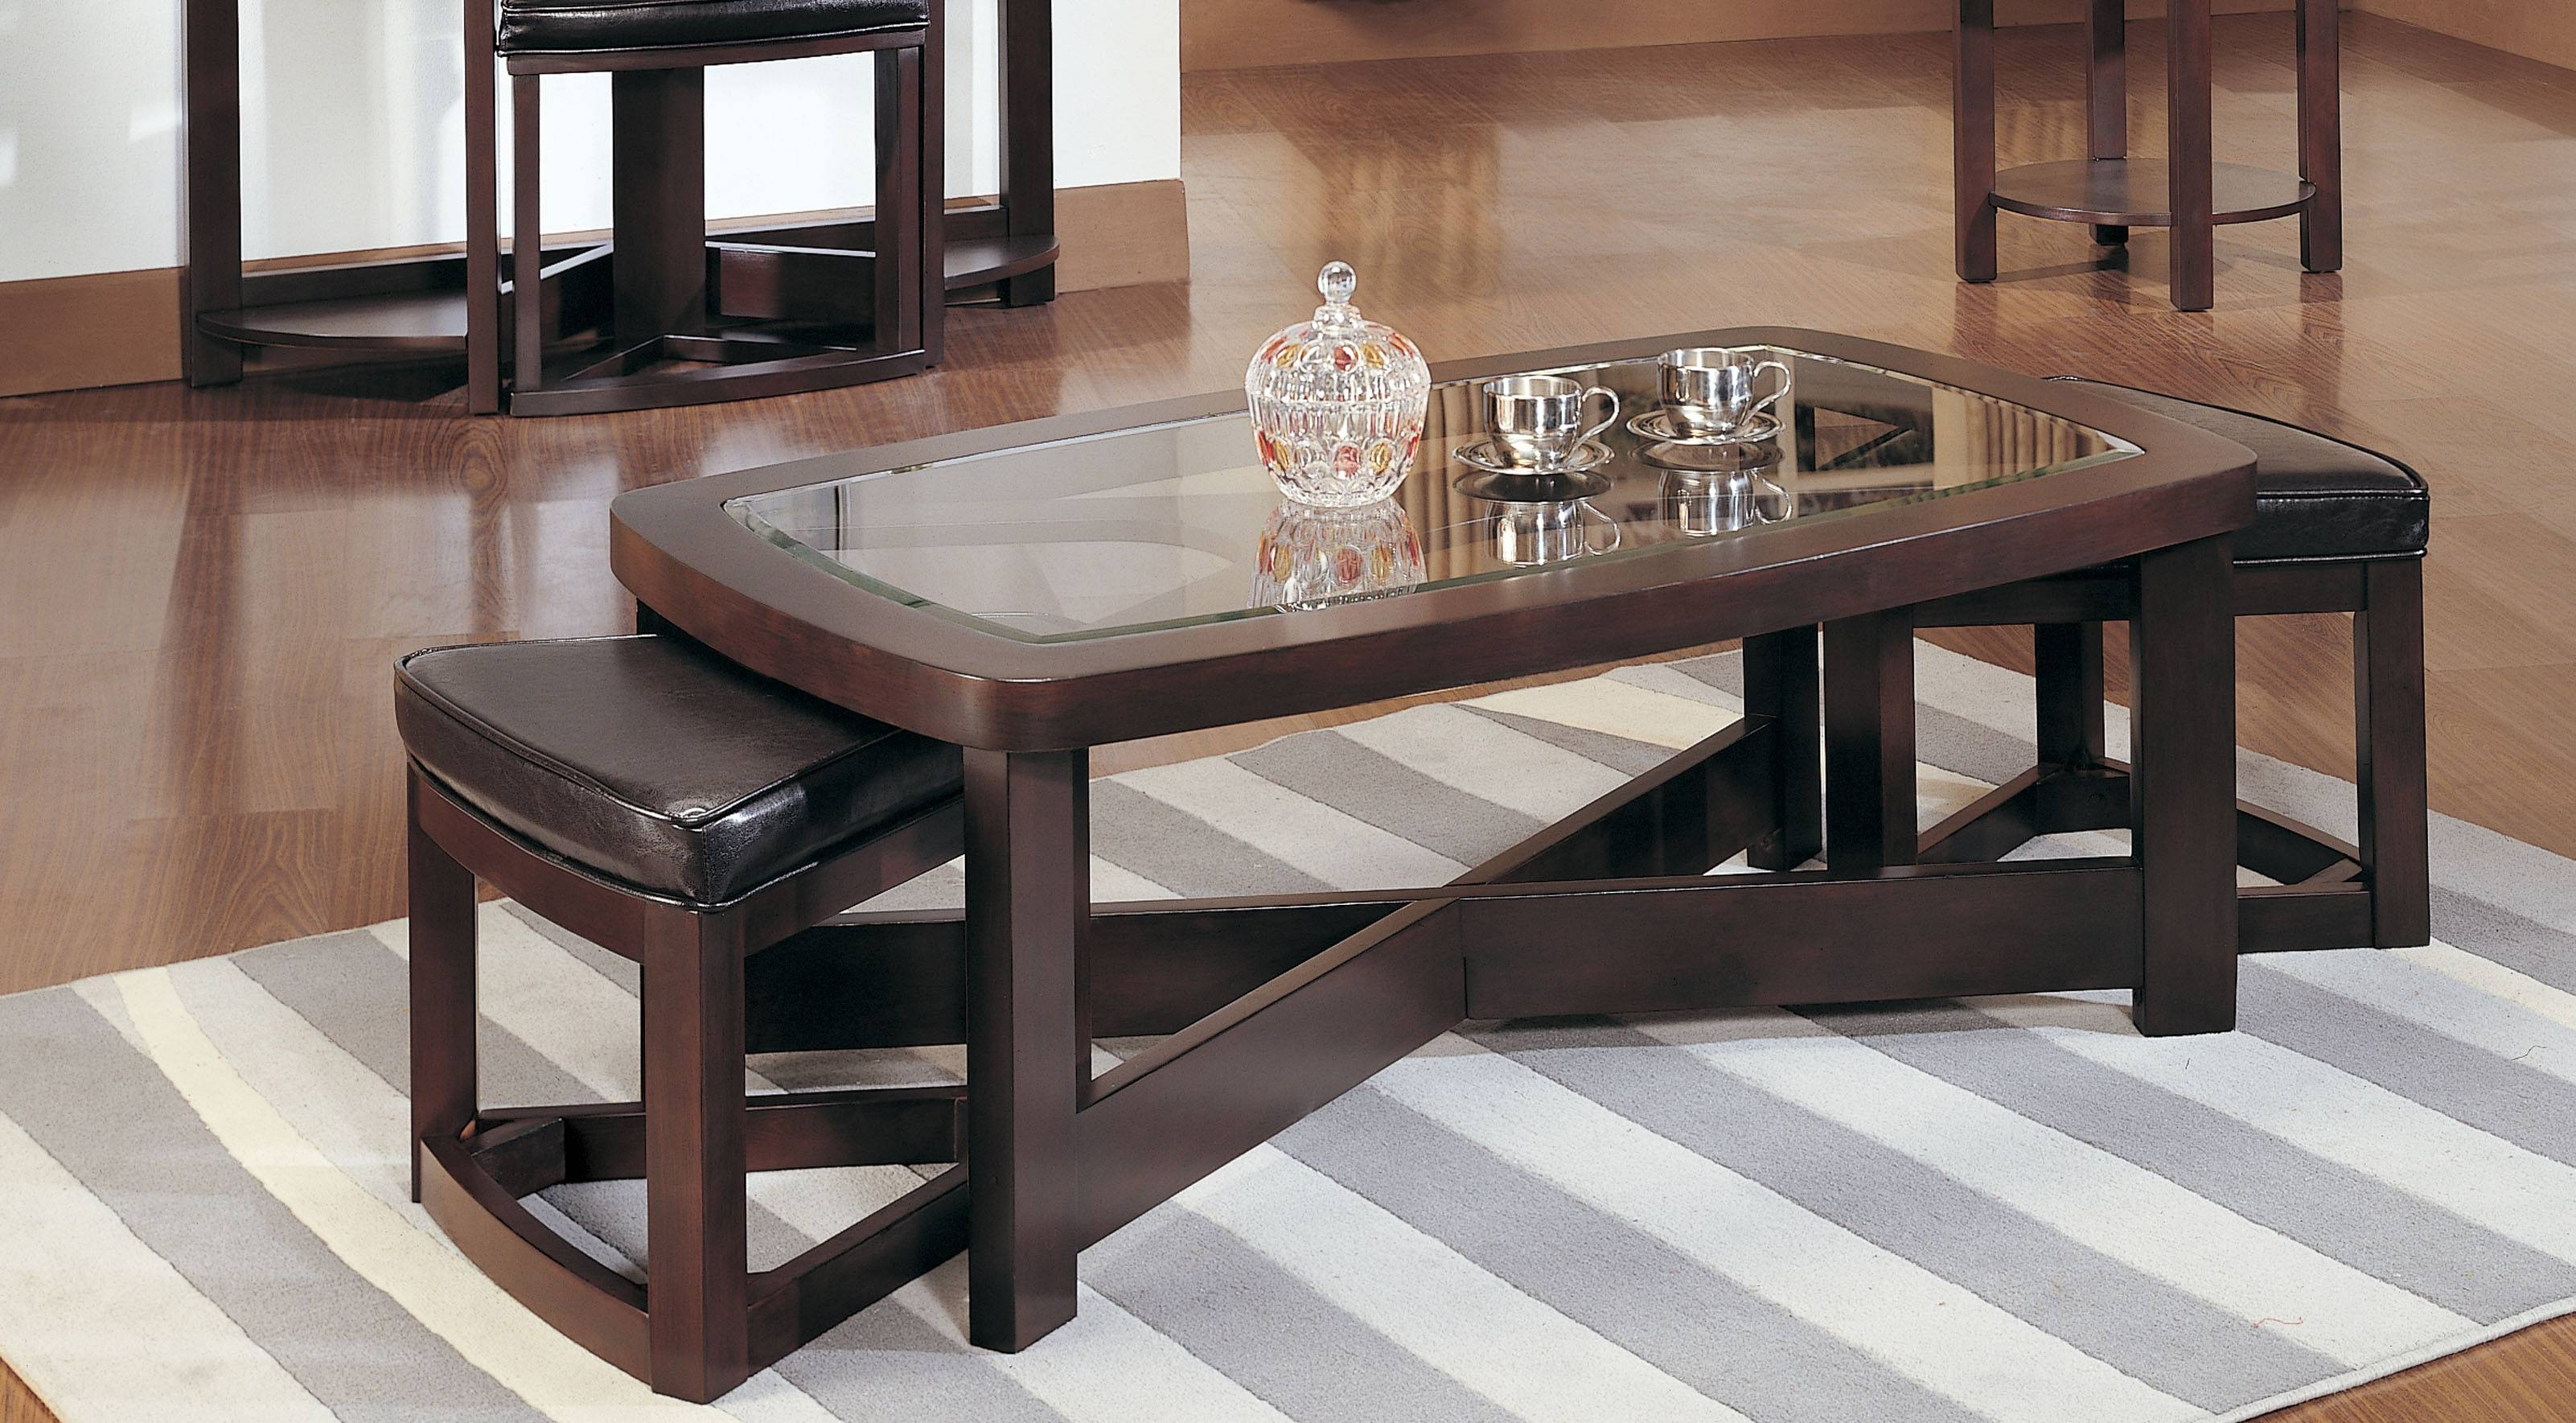 Furniture: Luxury Coffee Table With Stools For Living Room in Coffee Tables With Basket Storage Underneath (Image 16 of 30)